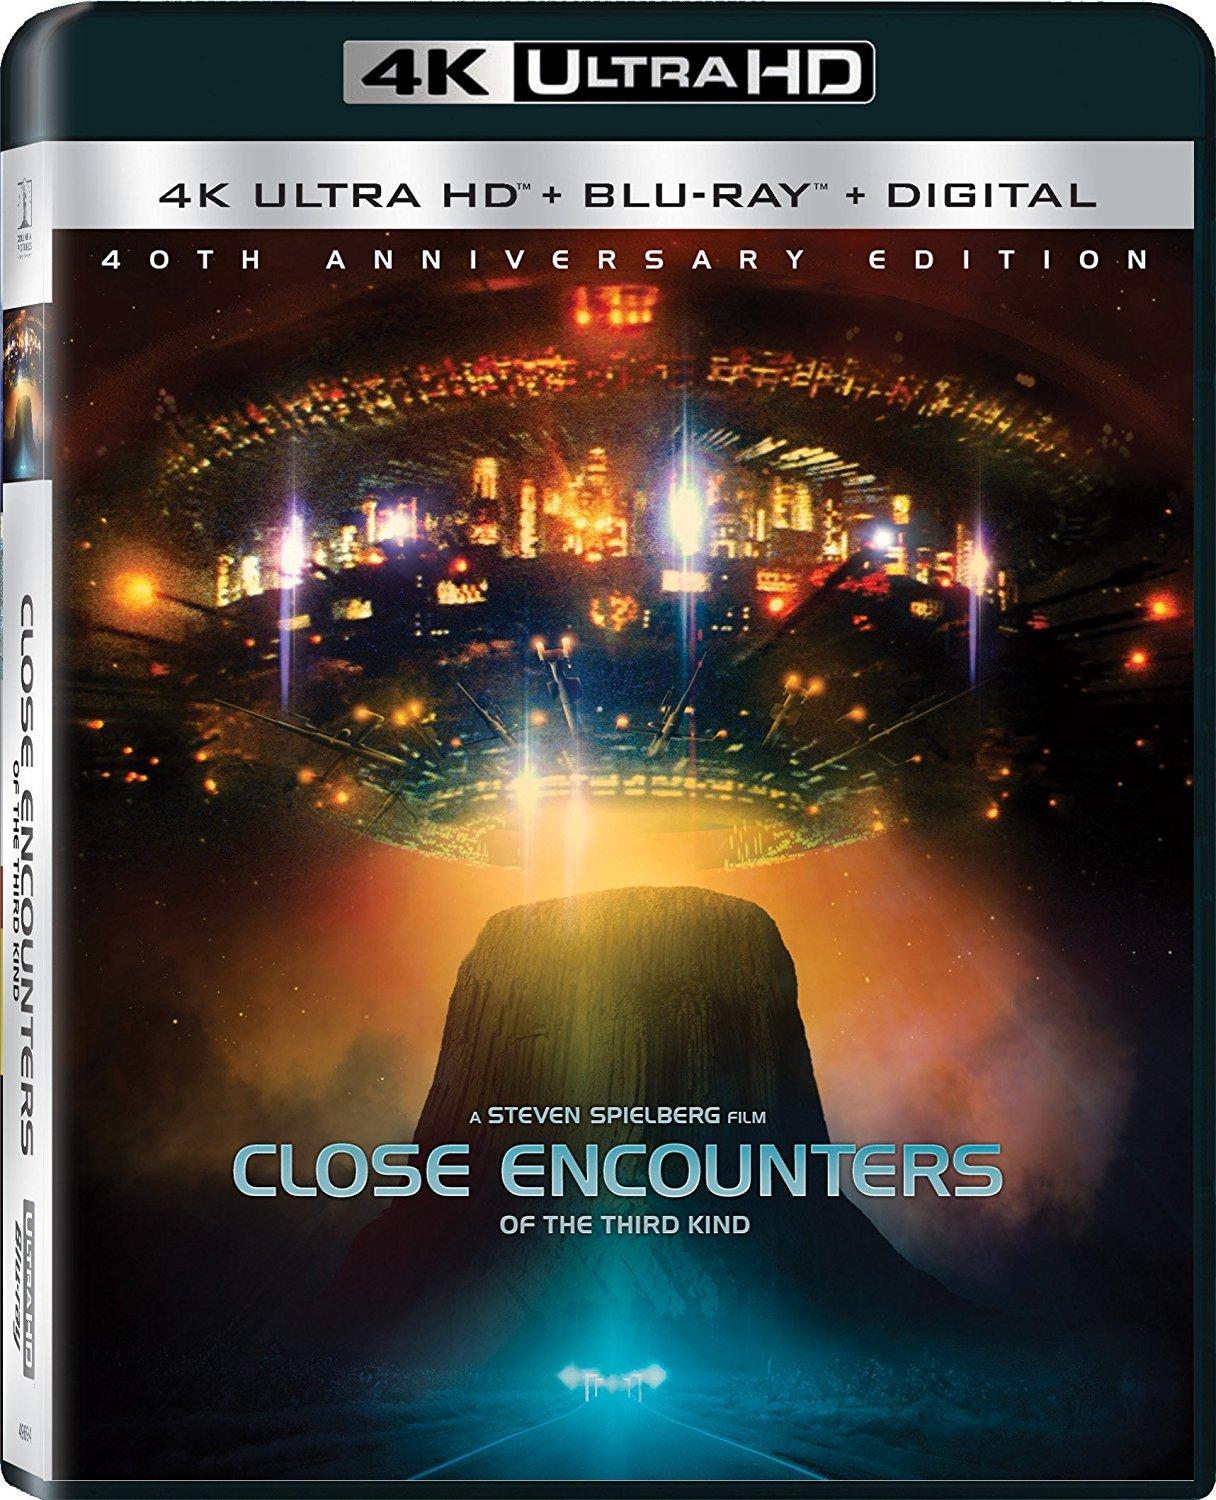 Close Encounters of the Third Kind 4K (1977) UHD Ultra HD Blu-ray